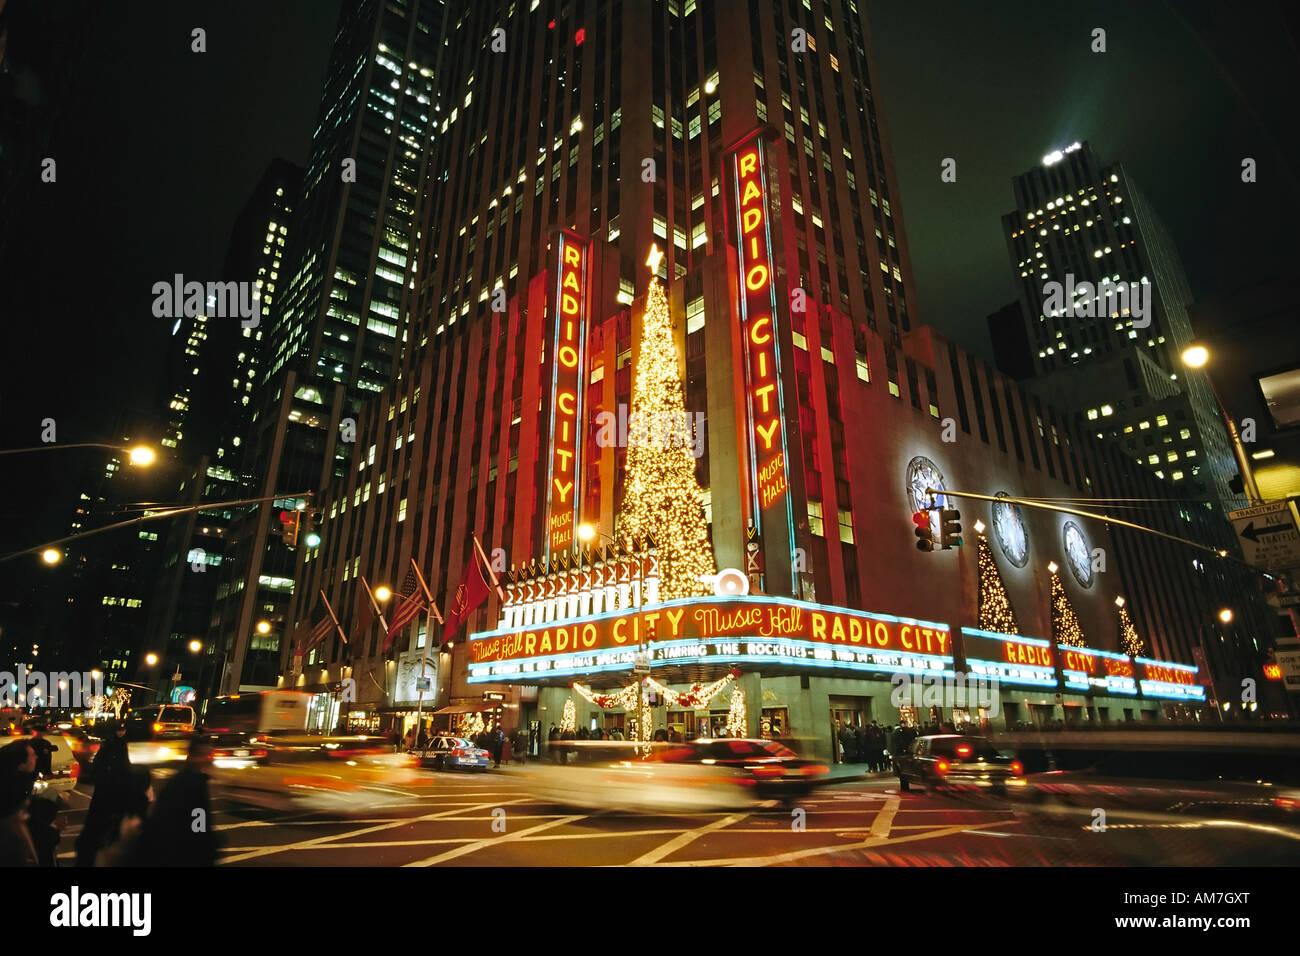 Radio City Music Hall building at night, Christmas in New York ...